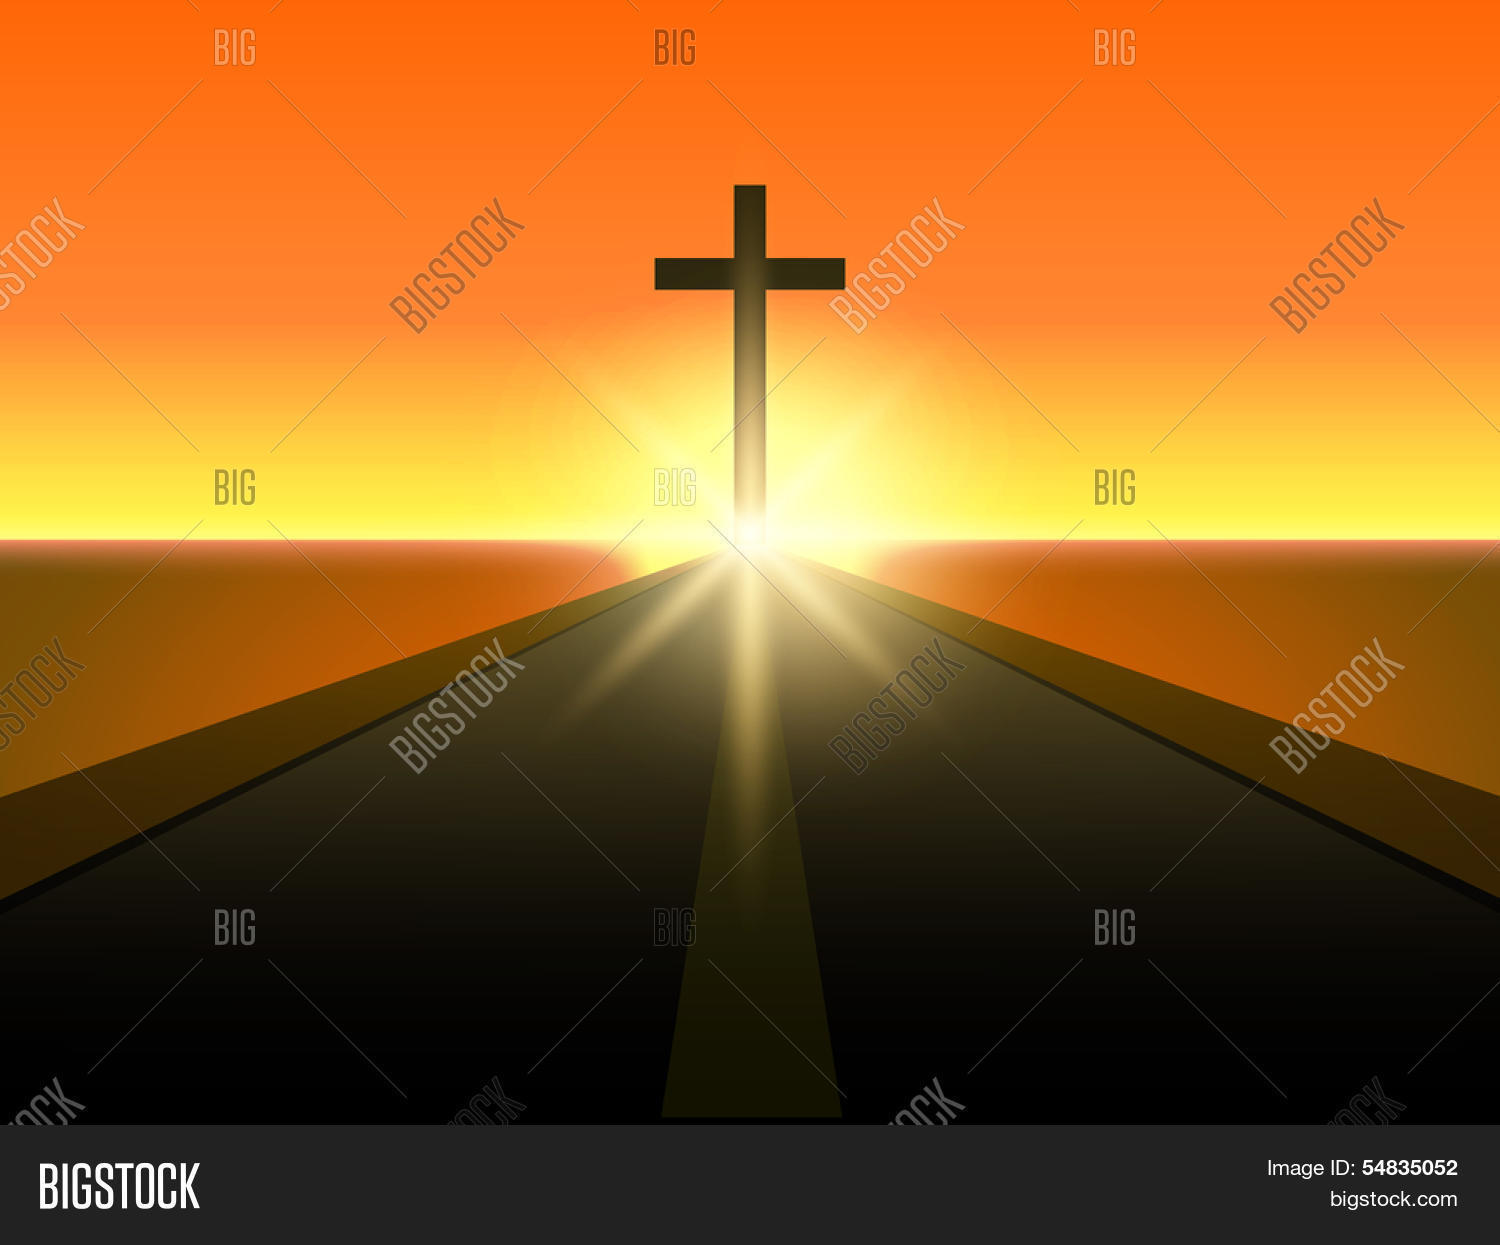 Merry christmas happy new year 2014 image photo bigstock merry christmas and happy new year 2014 celebration concept with view of christian cross in evening voltagebd Image collections